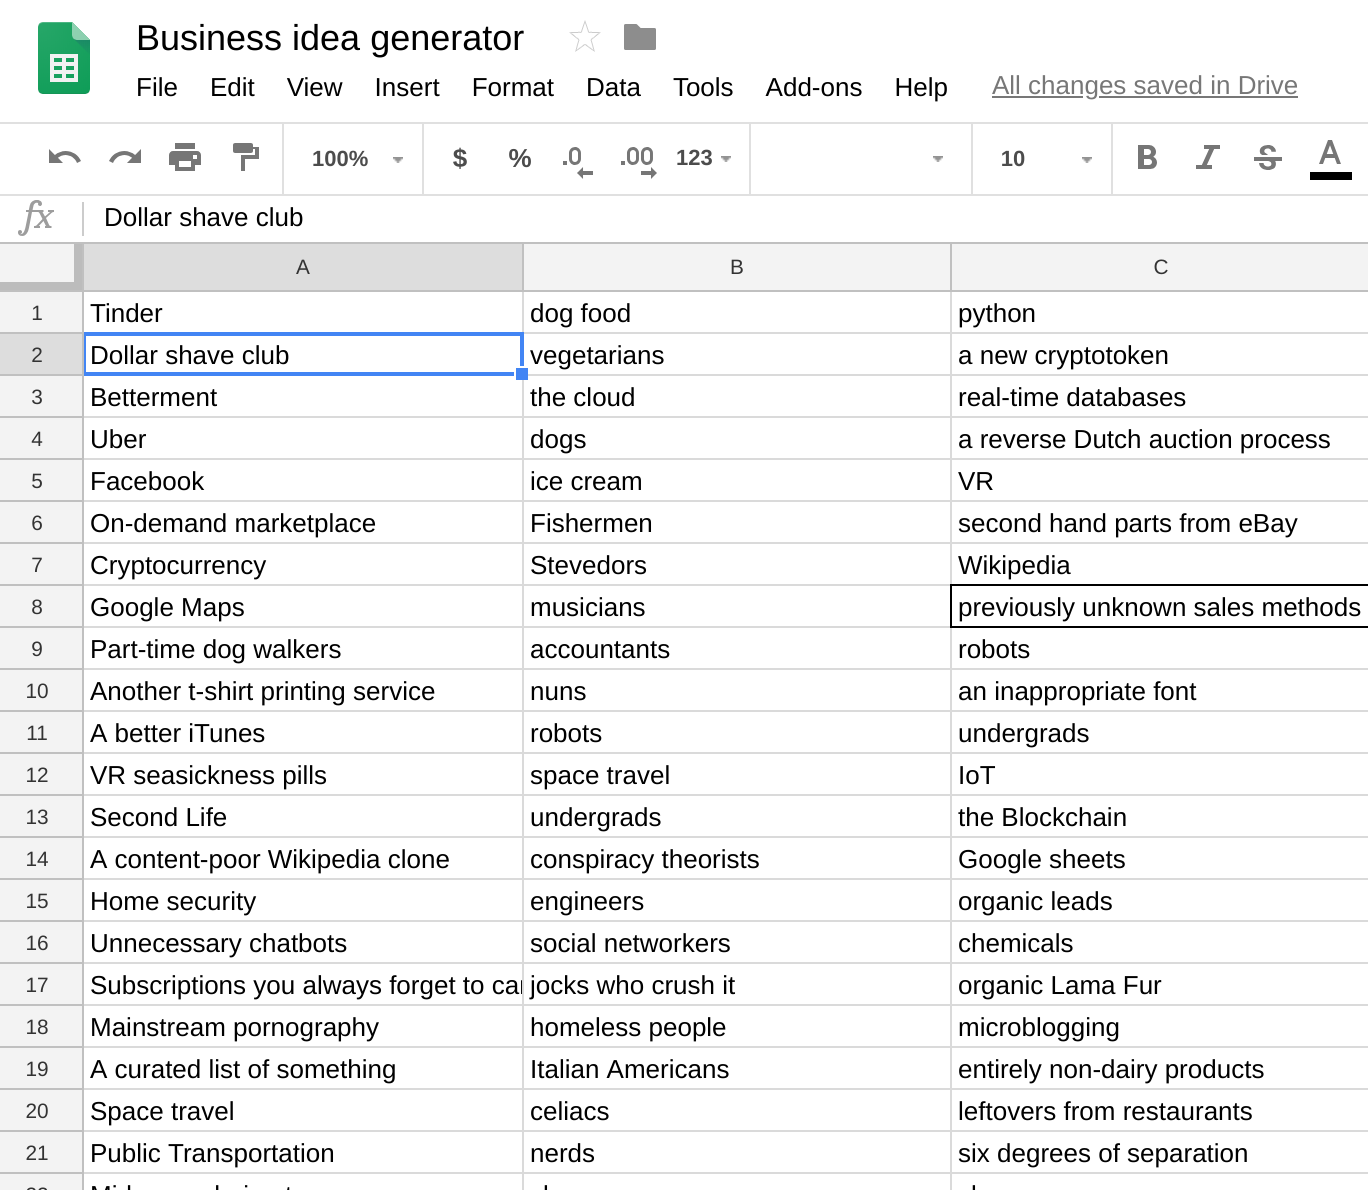 Google Sheets as an API - using Google Sheets as a database for a REST API